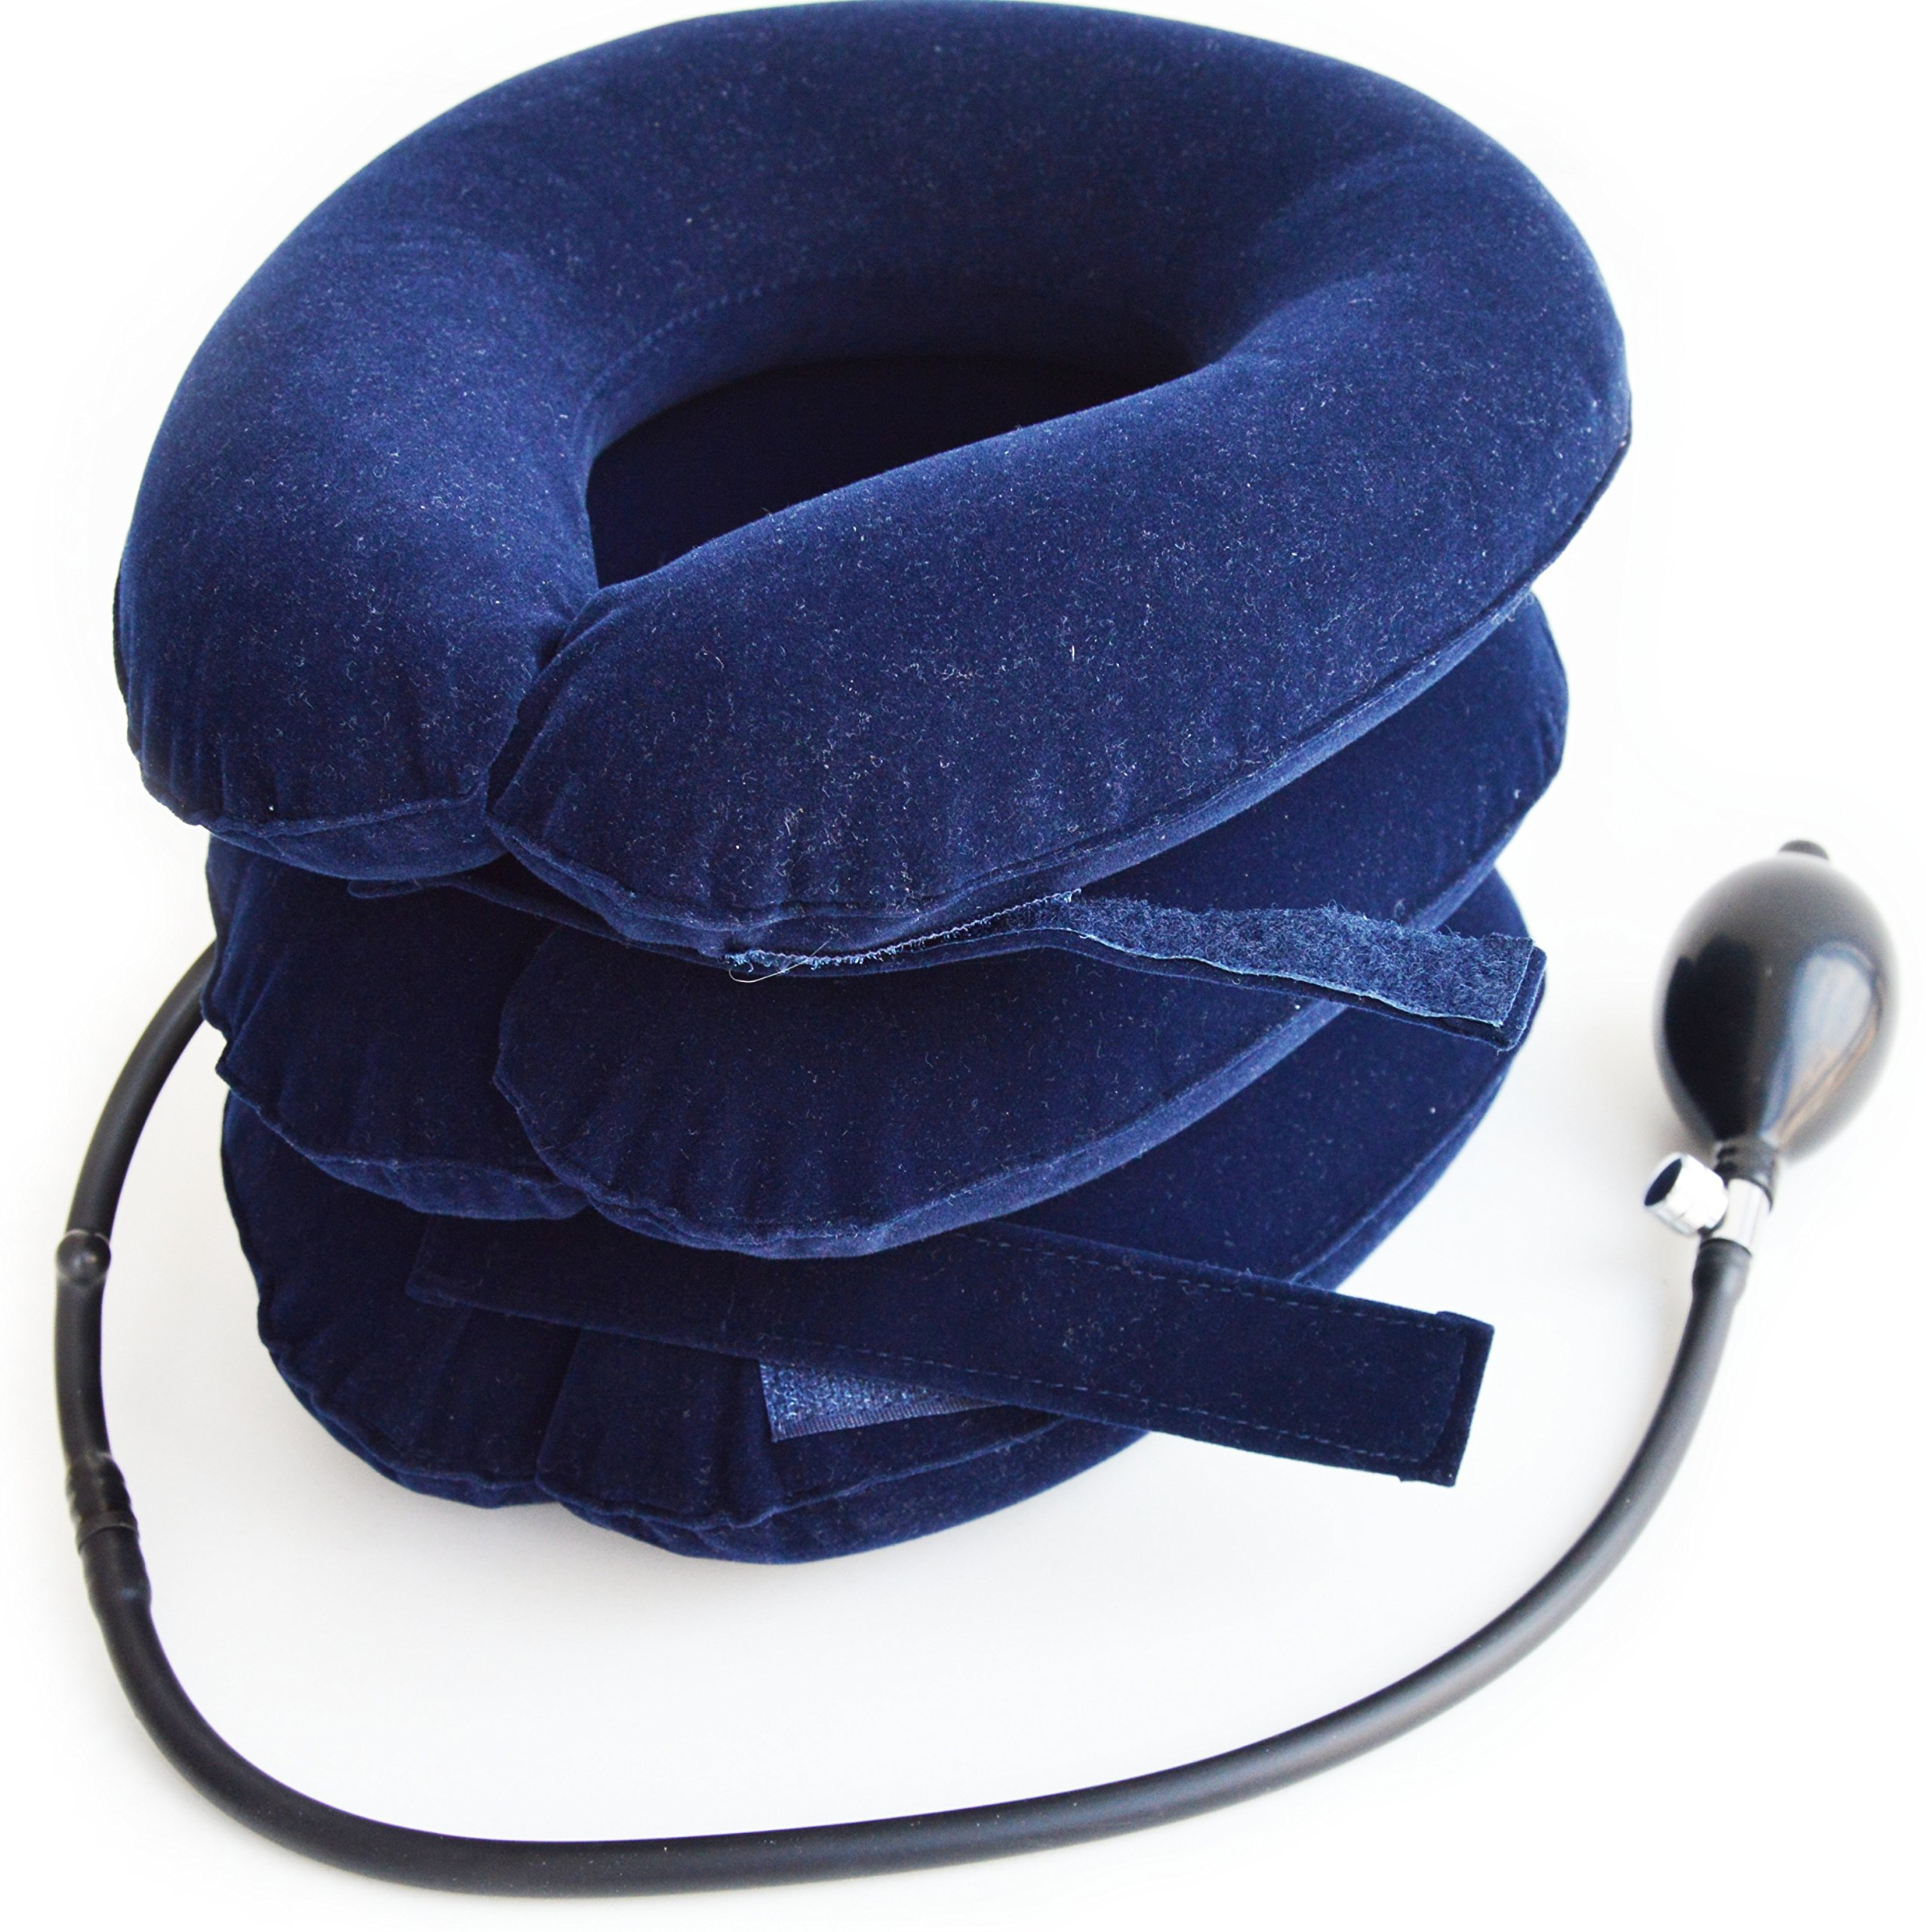 SafeMedika's Cervical Neck Traction Device - Effective Chronic Neck Pain & Shoulder Pain Relief Collar for Home Traction Spine Alignment